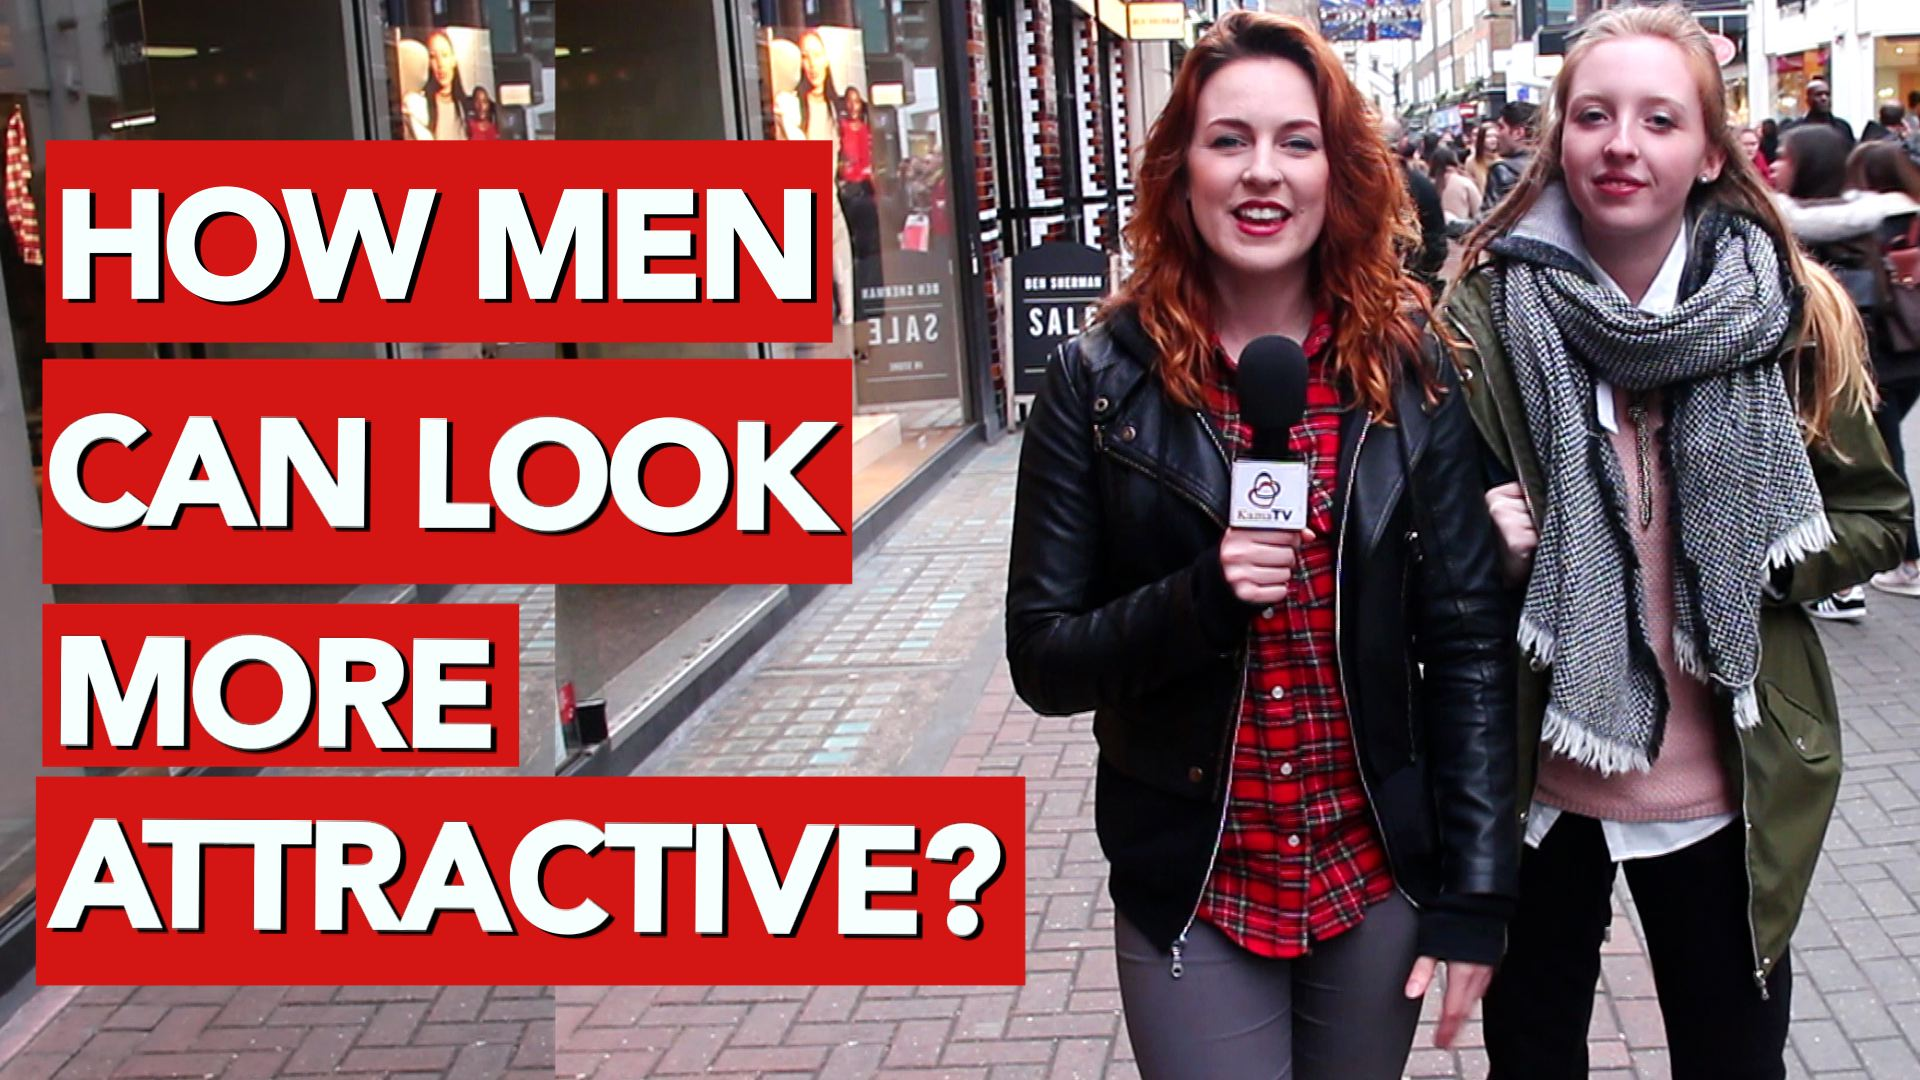 How men can look more attractive